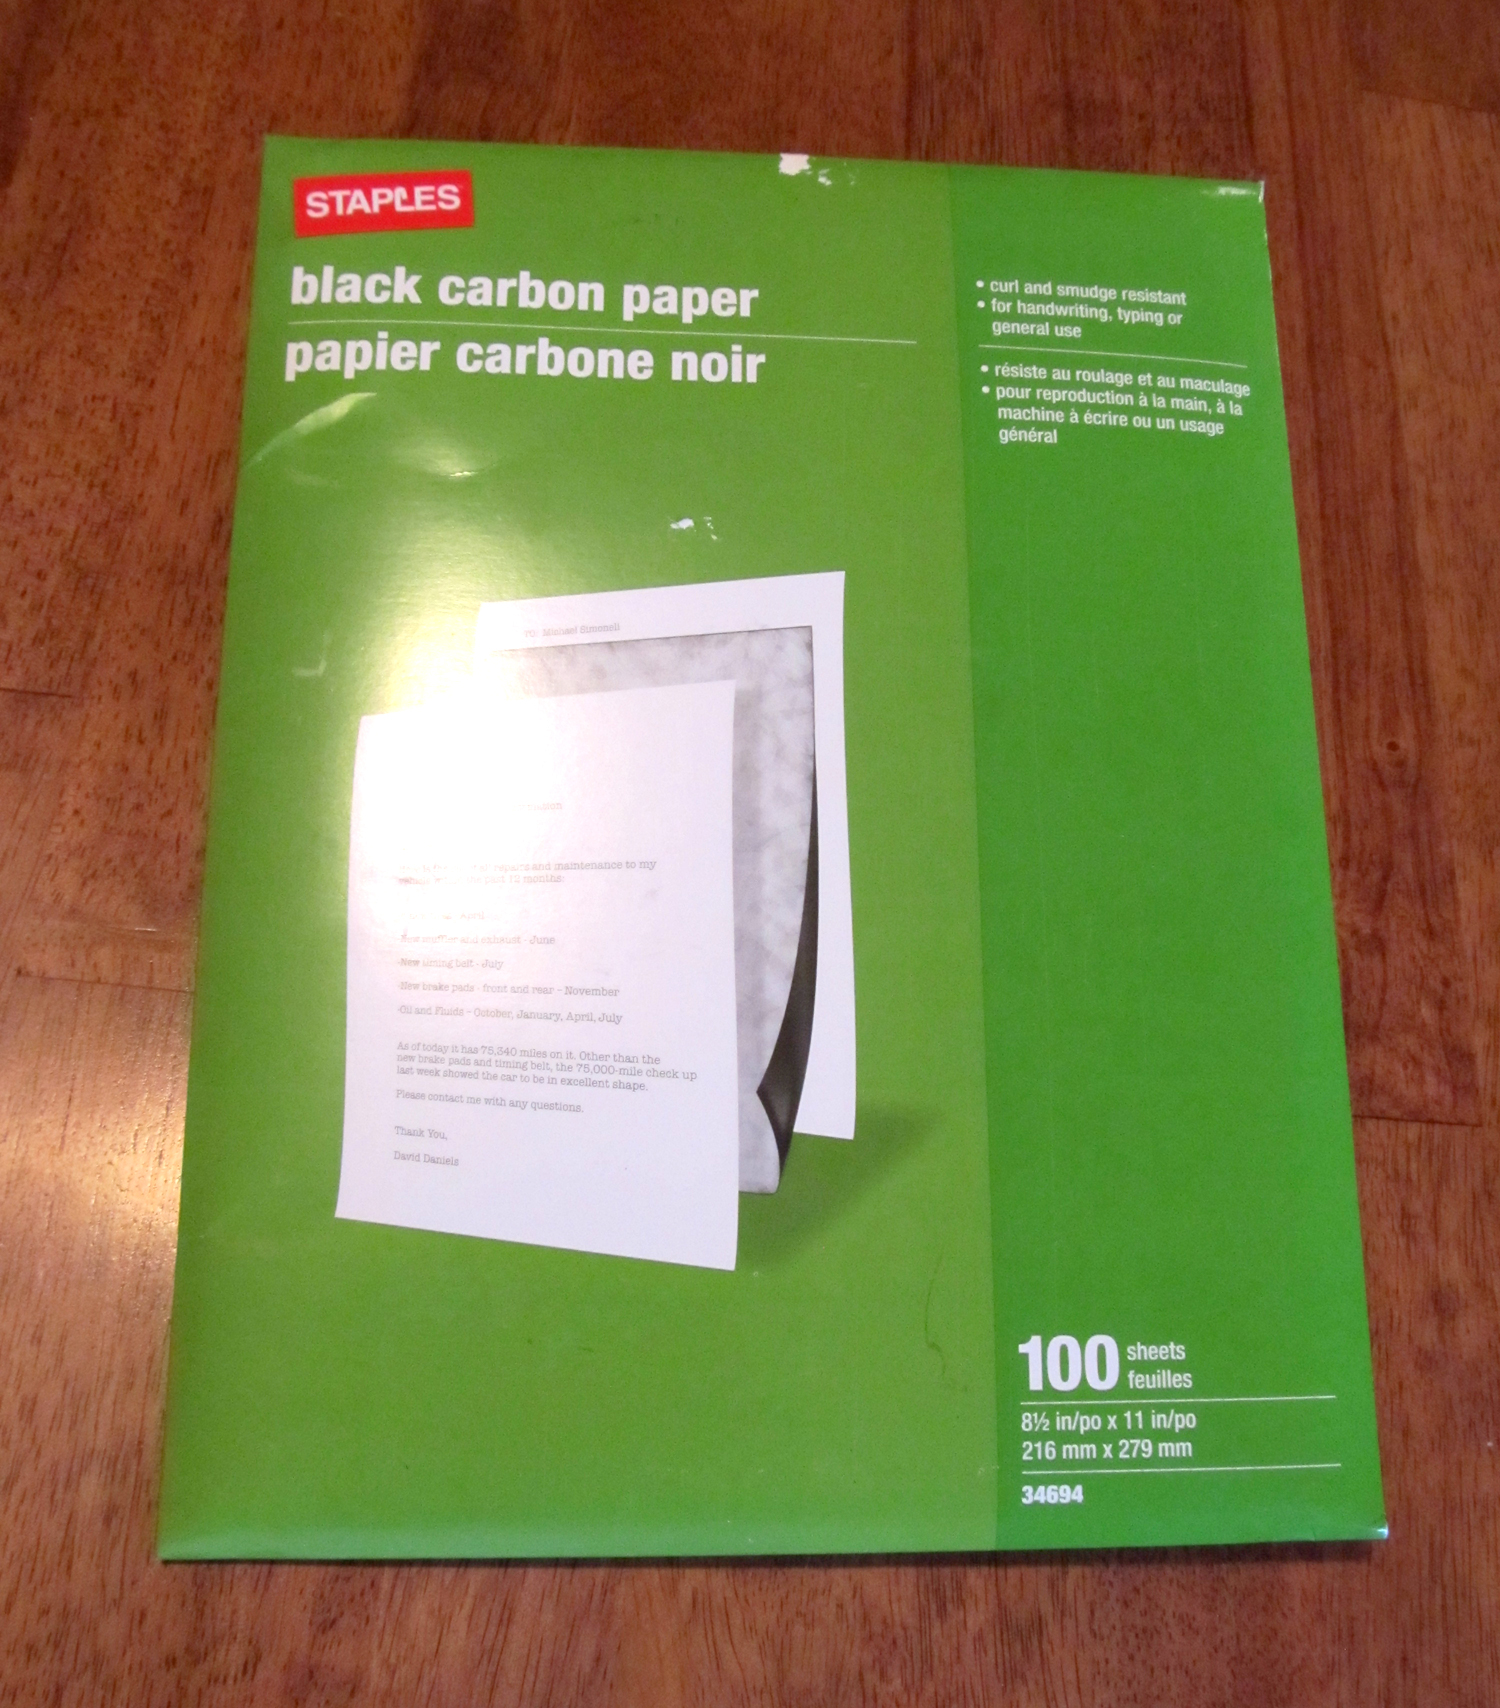 carbon paper Product description dalton manor a4 carbon paper colour black also available in blue and red.